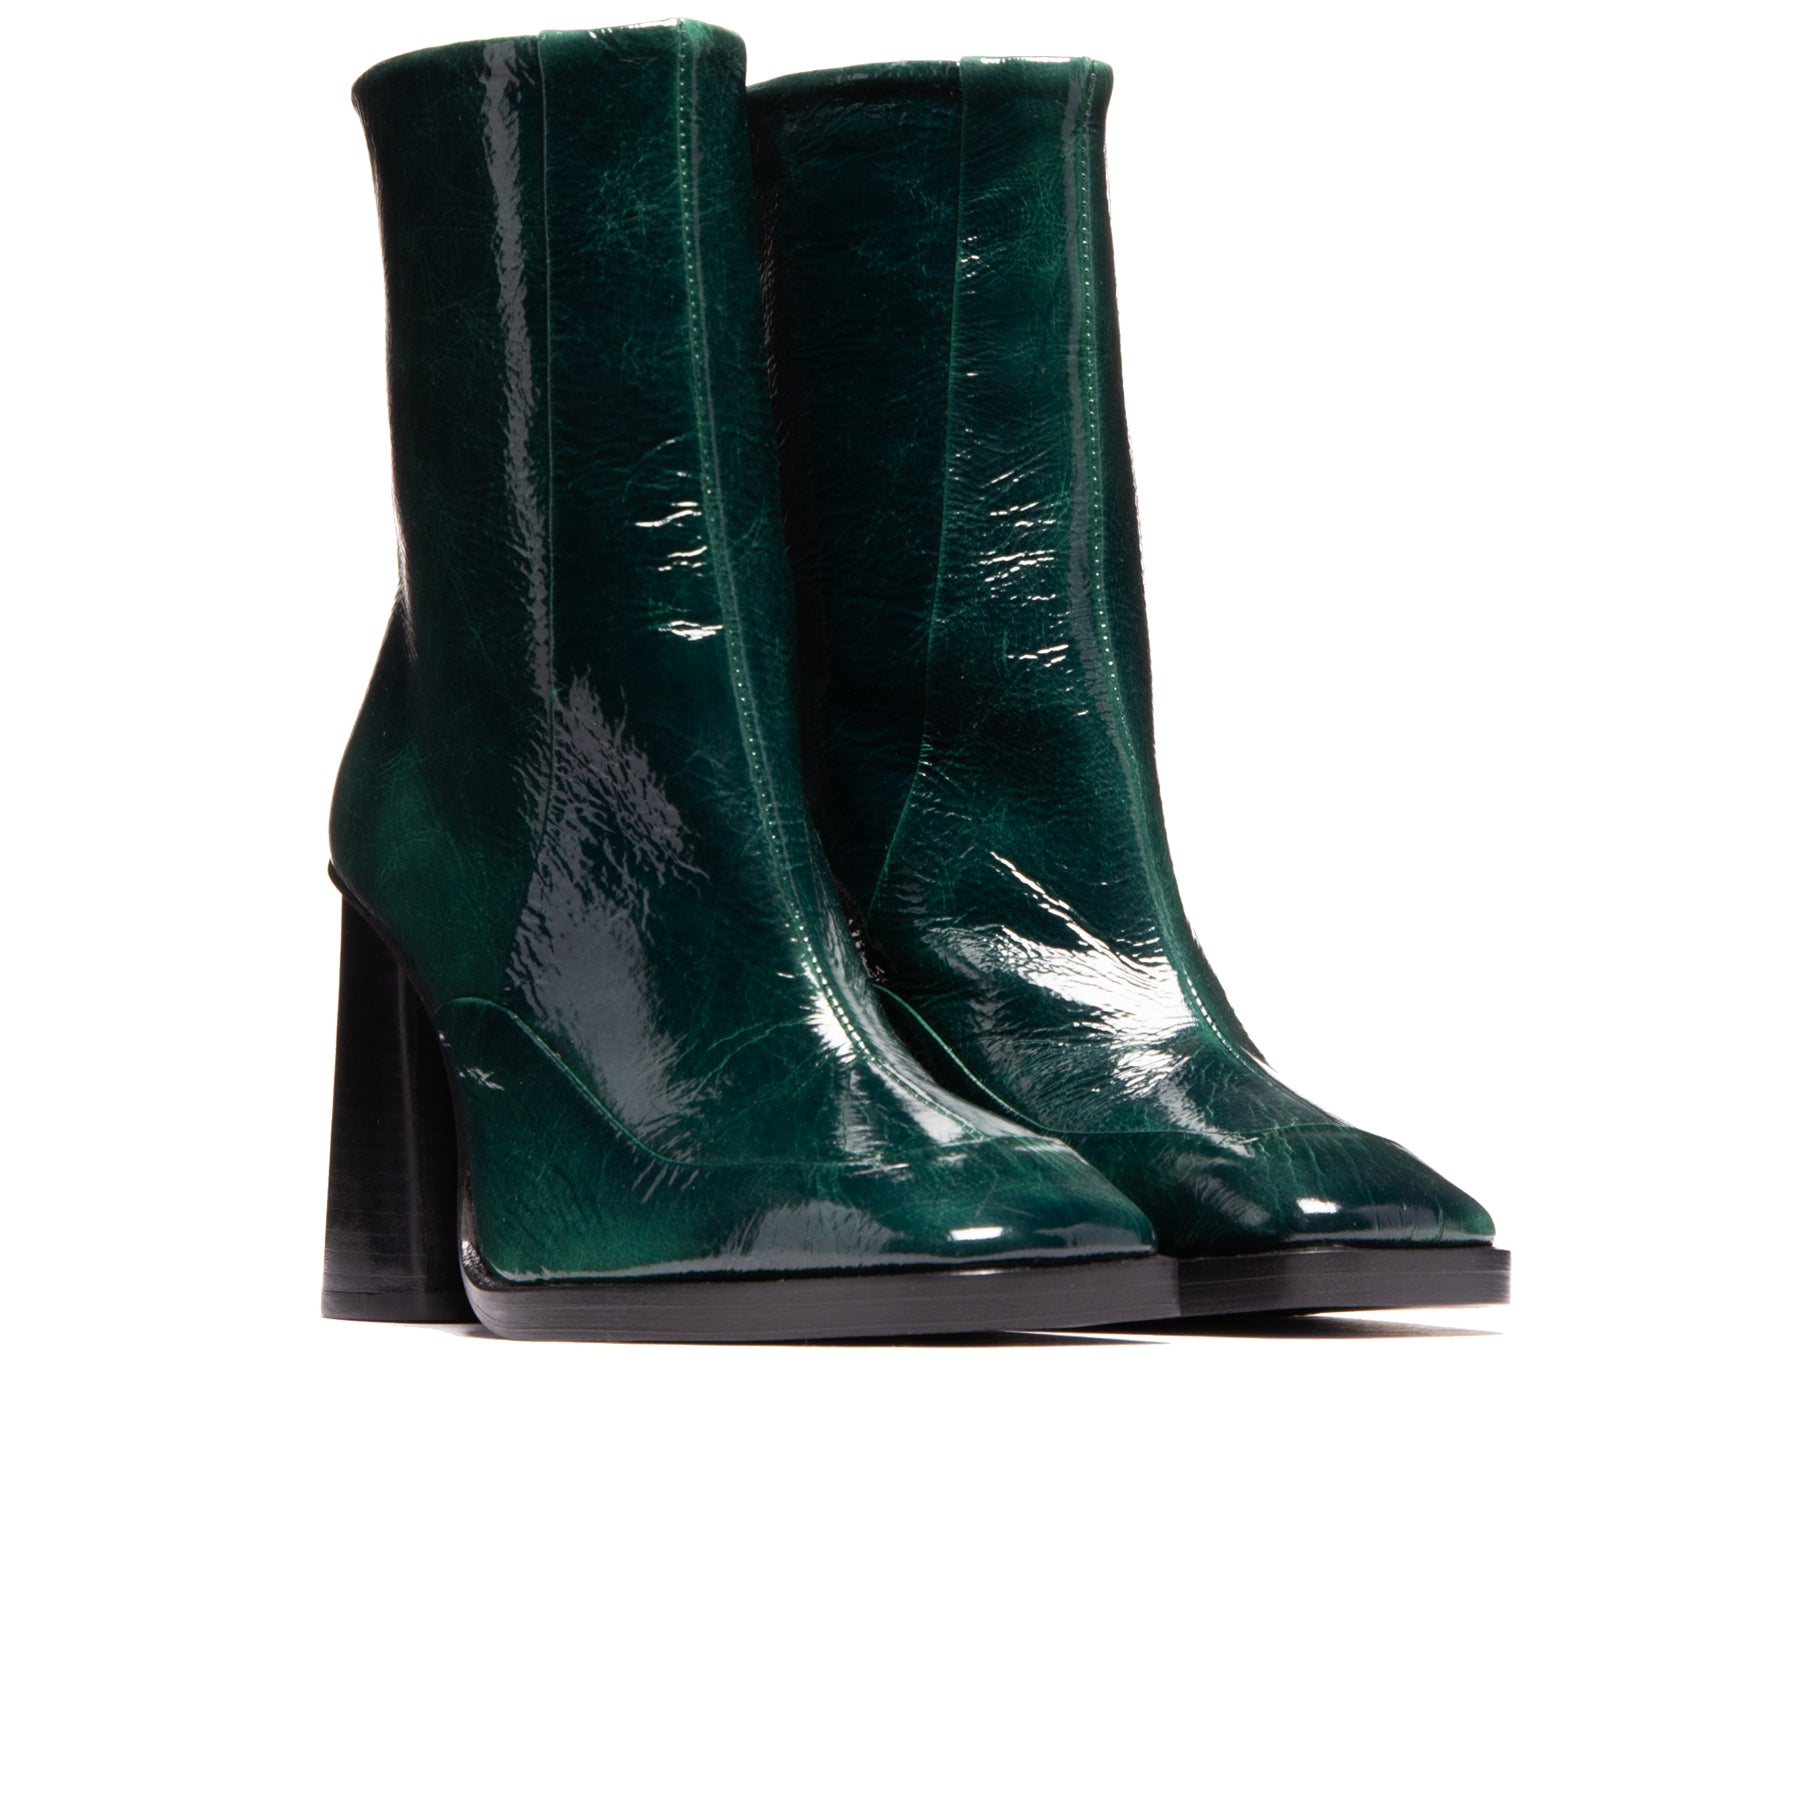 Kingsbury Green Leather